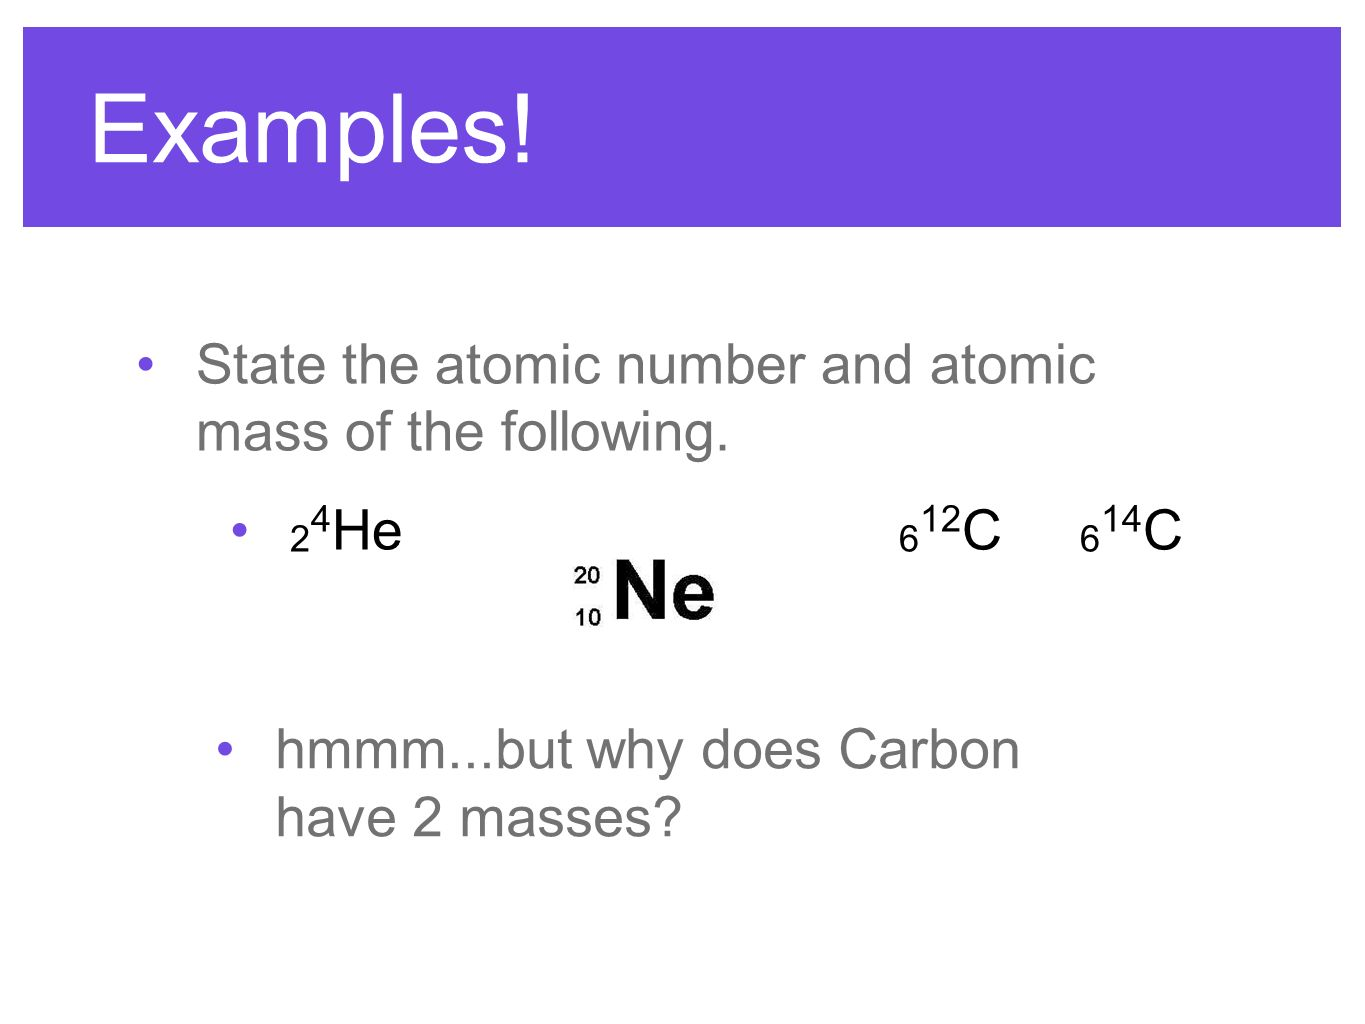 the atomic number and structure of In the sparknote on the periodic table we discussed a number of simple periodic trends in this section we will discuss a number of more complex trends, the understanding of which relies on knowledge of atomic structure.